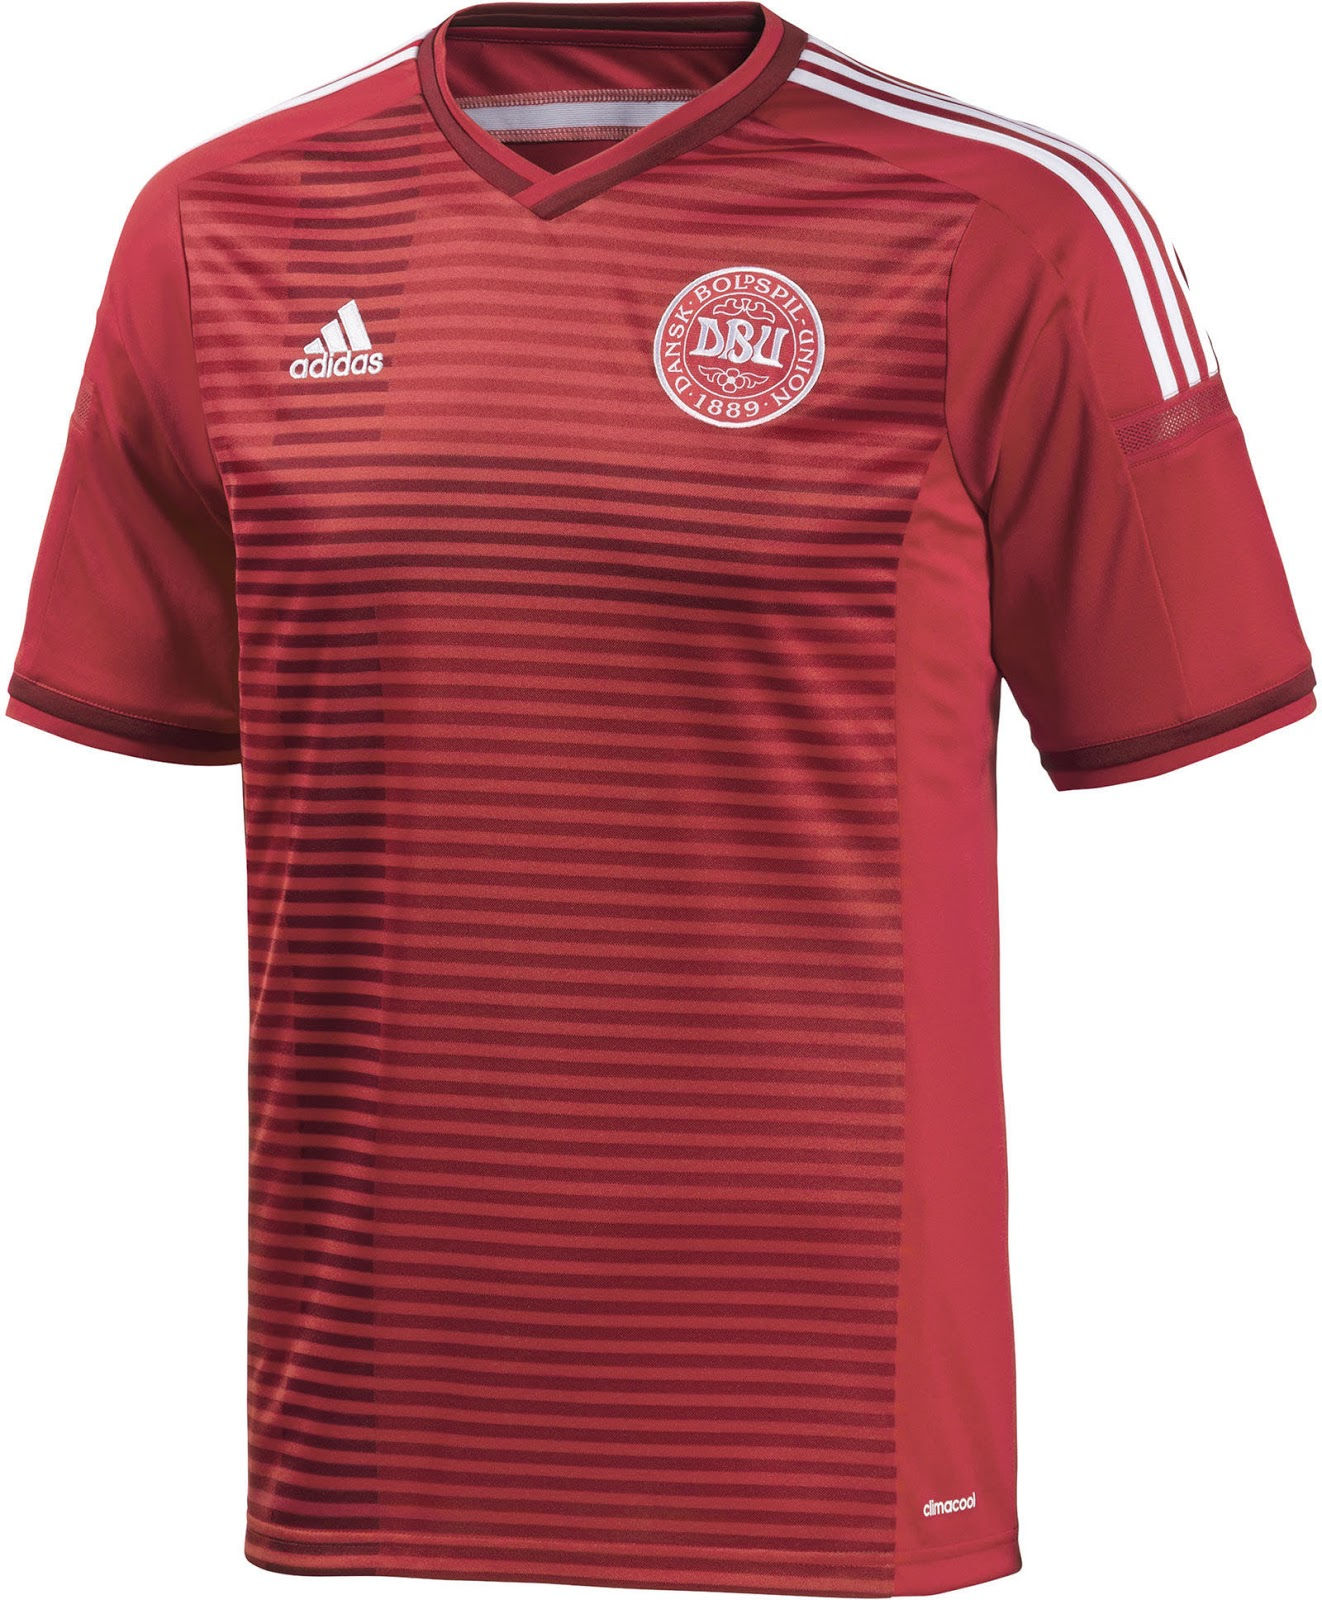 bc7a7e375ea Adidas creates special design elements for all of their National teams